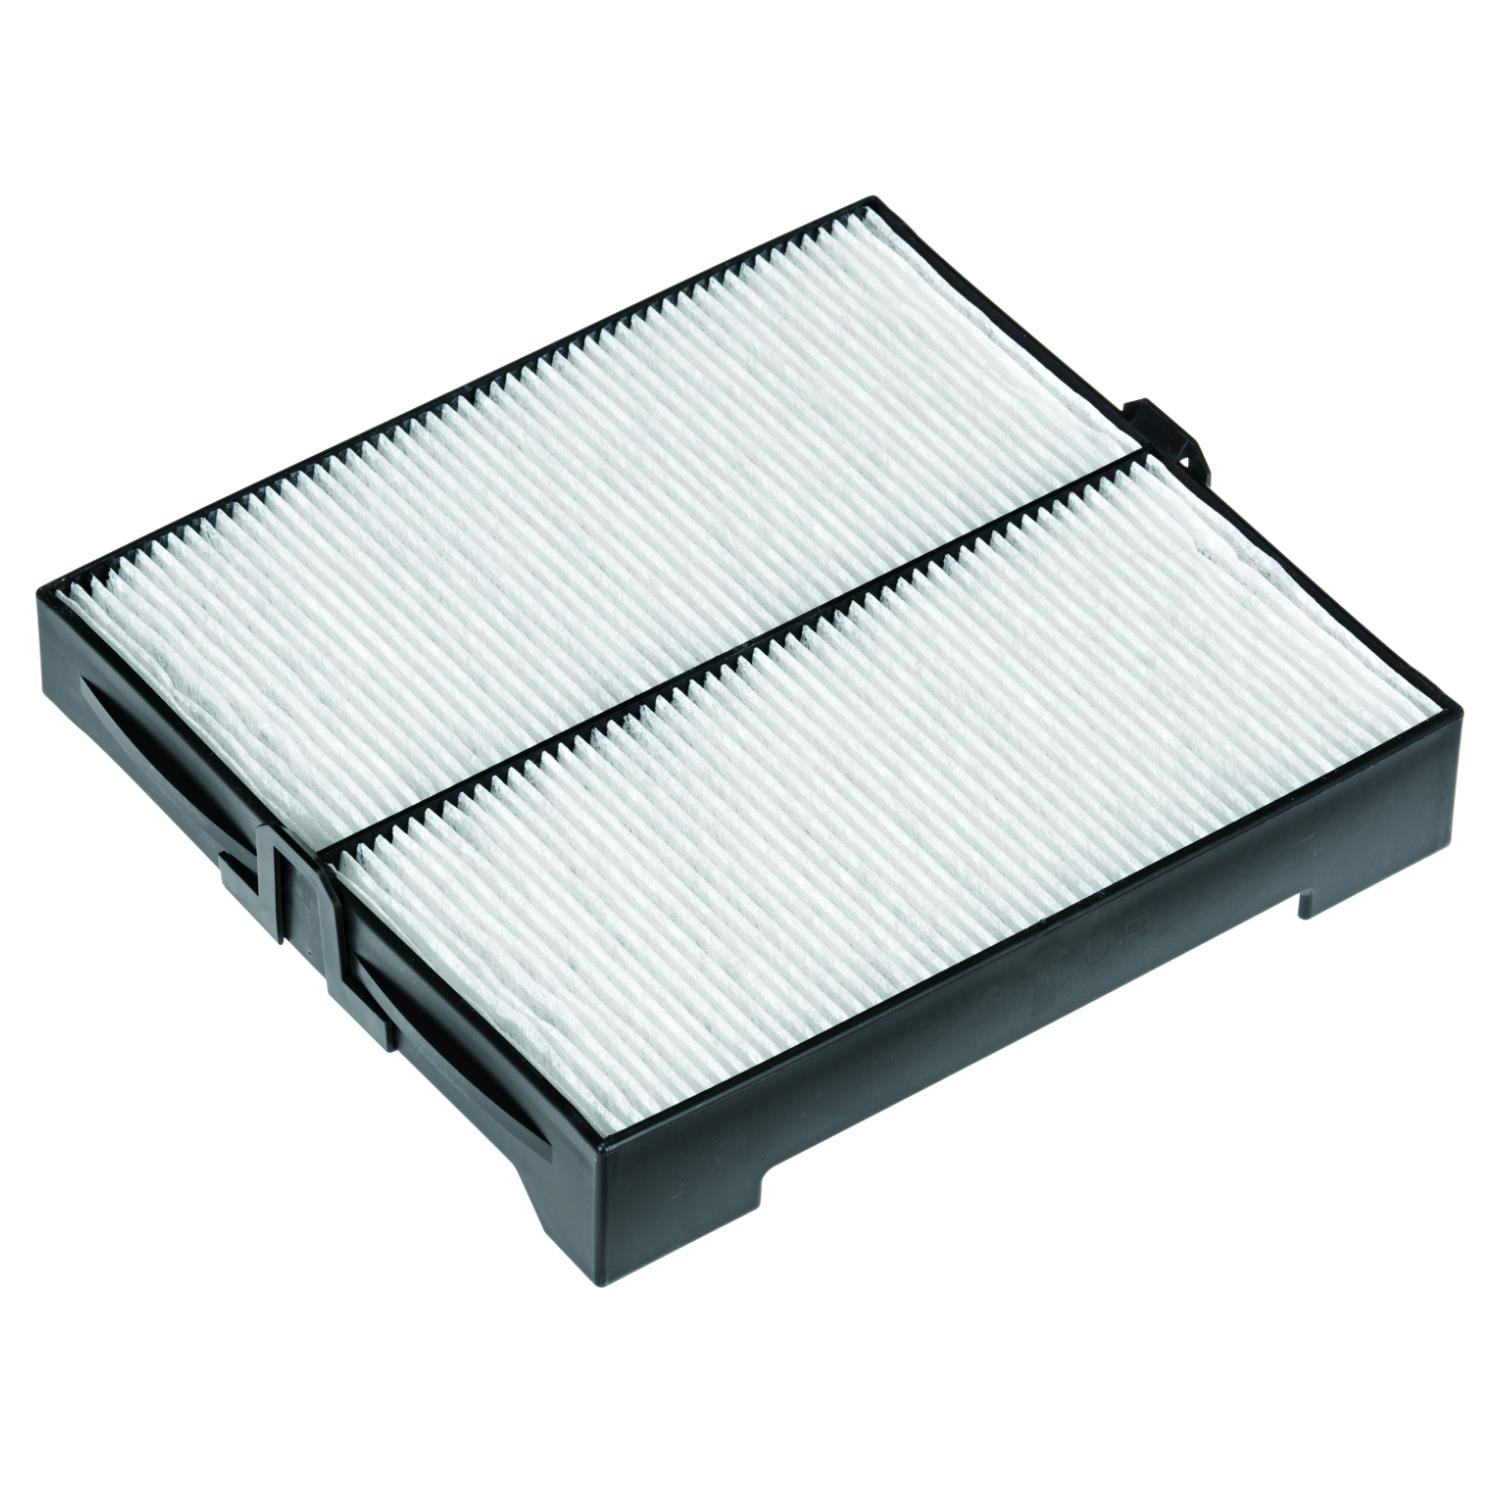 Atp automotive ra 37 carbon activated premium cabin filter for Cabin air filter subaru forester